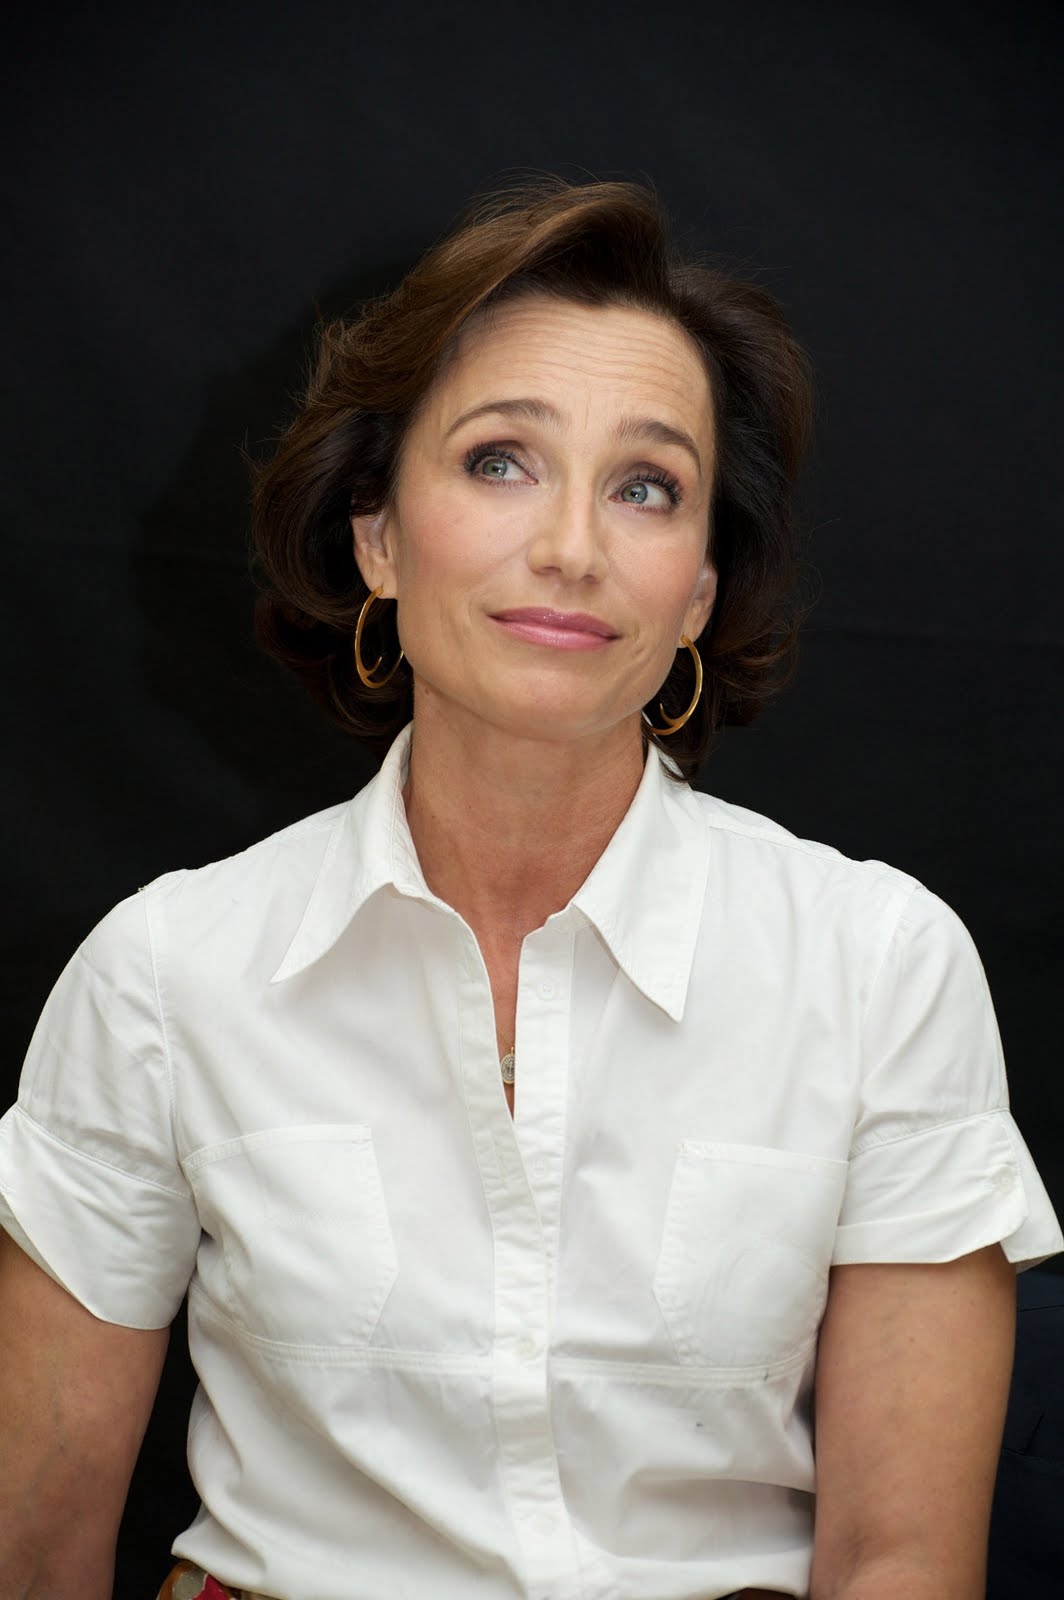 Kristin-Scott-Thomas-dressed-1770368.jpg